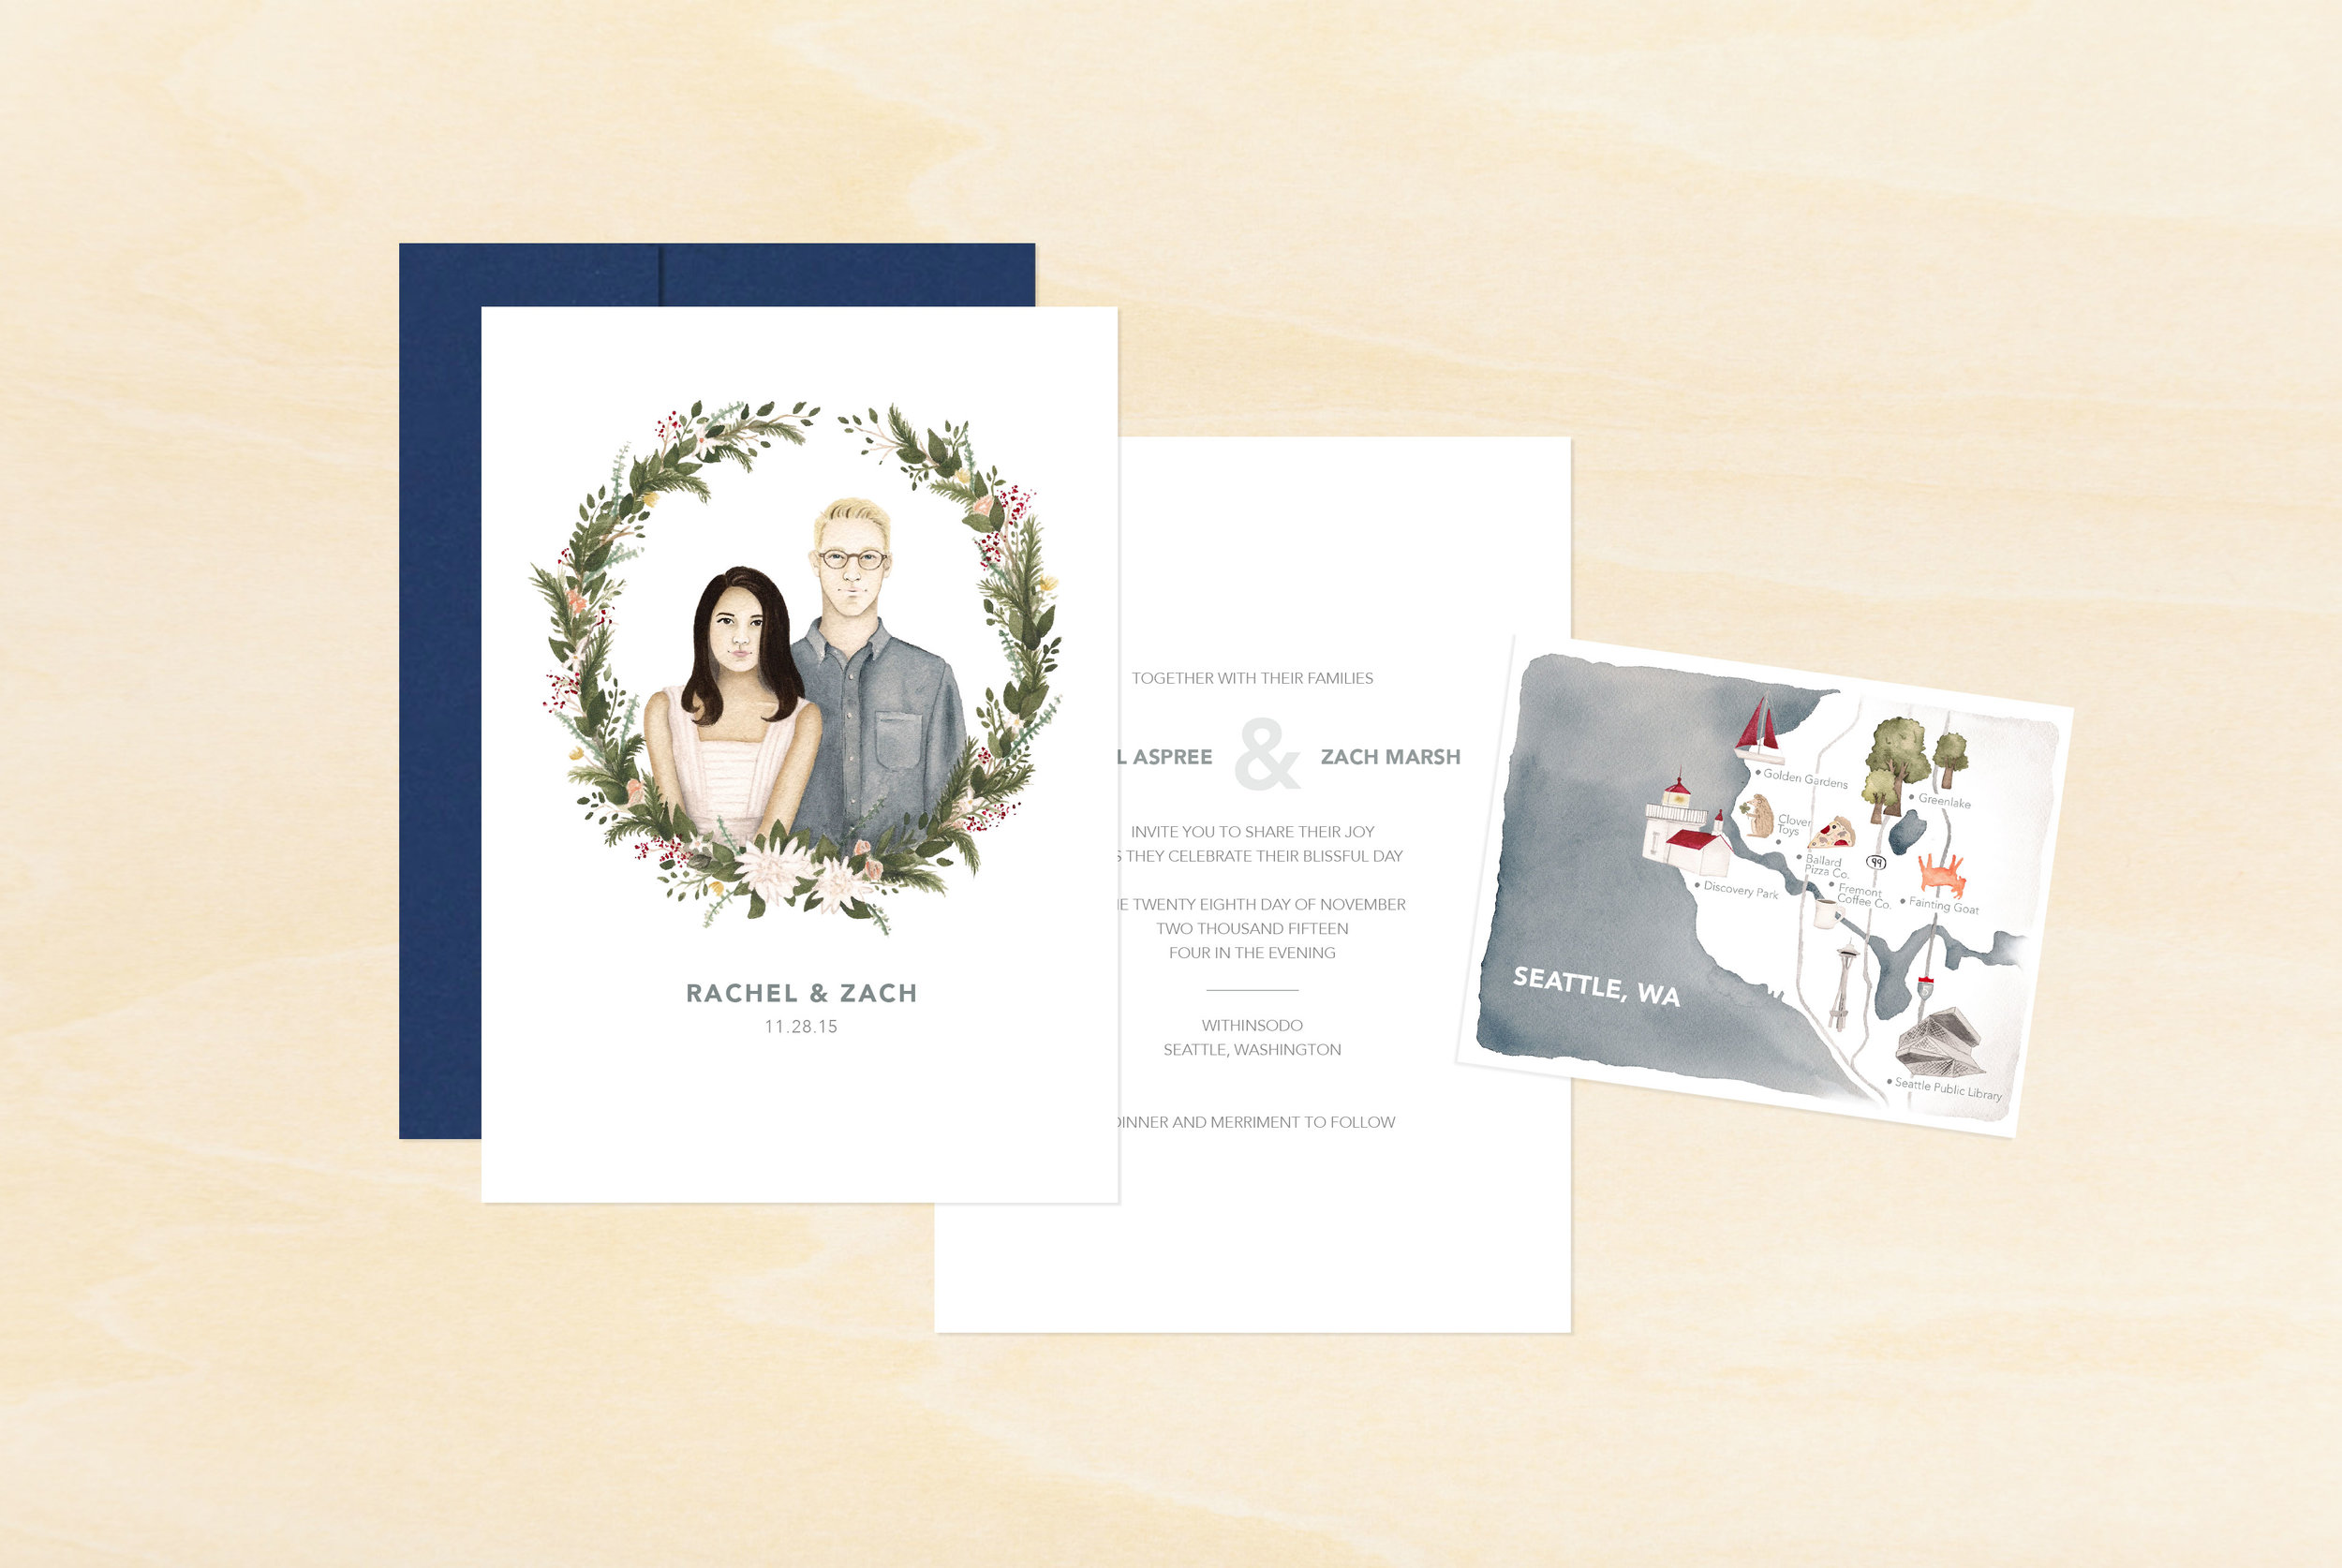 Rachel-and_Zach_invite_photos_layout.jpg